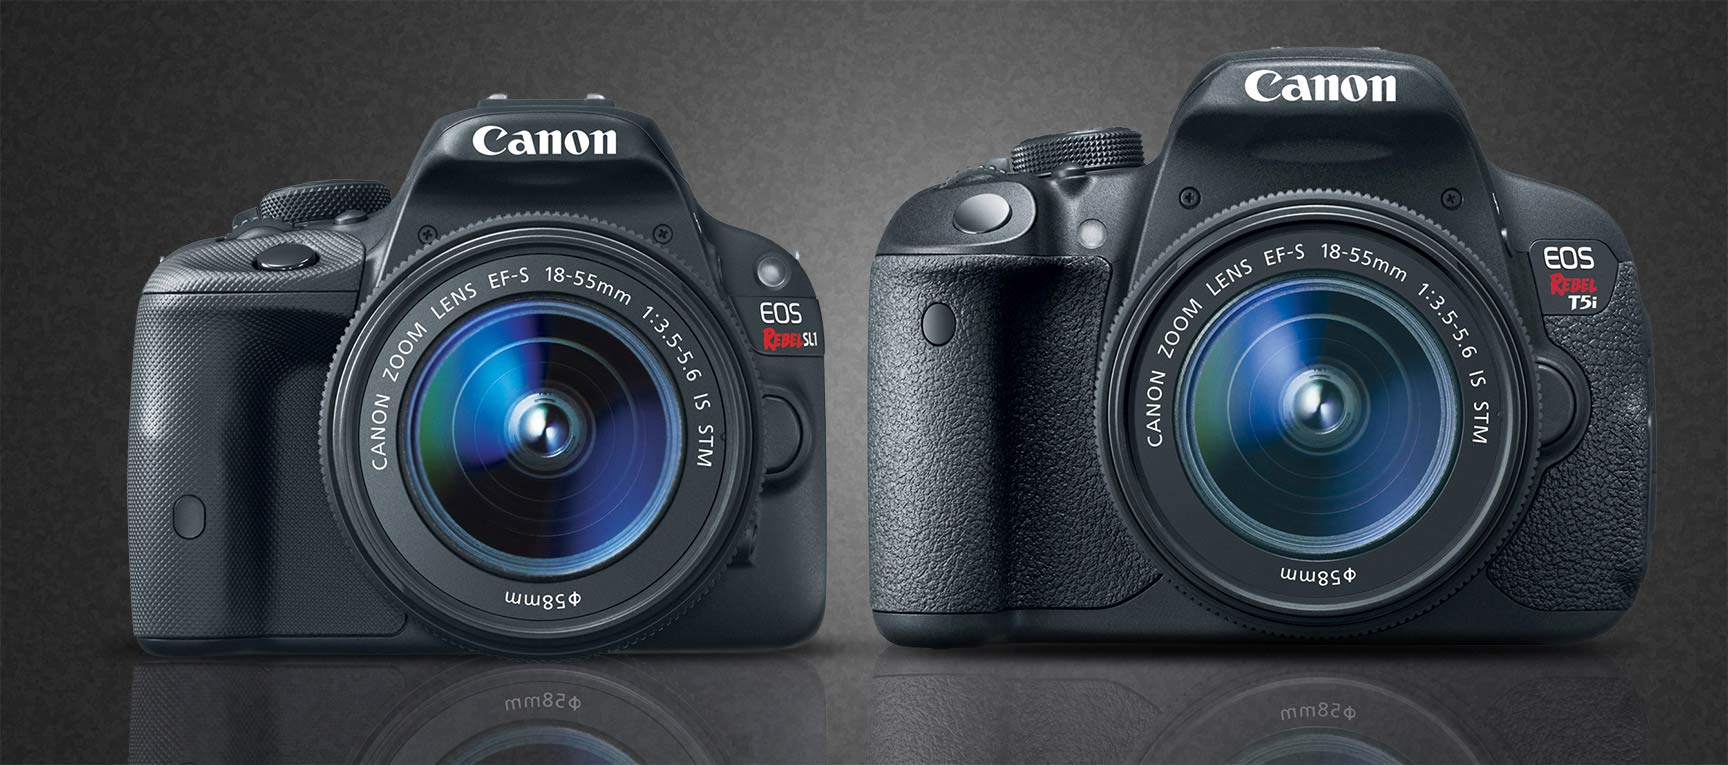 Canon T5i and SL1